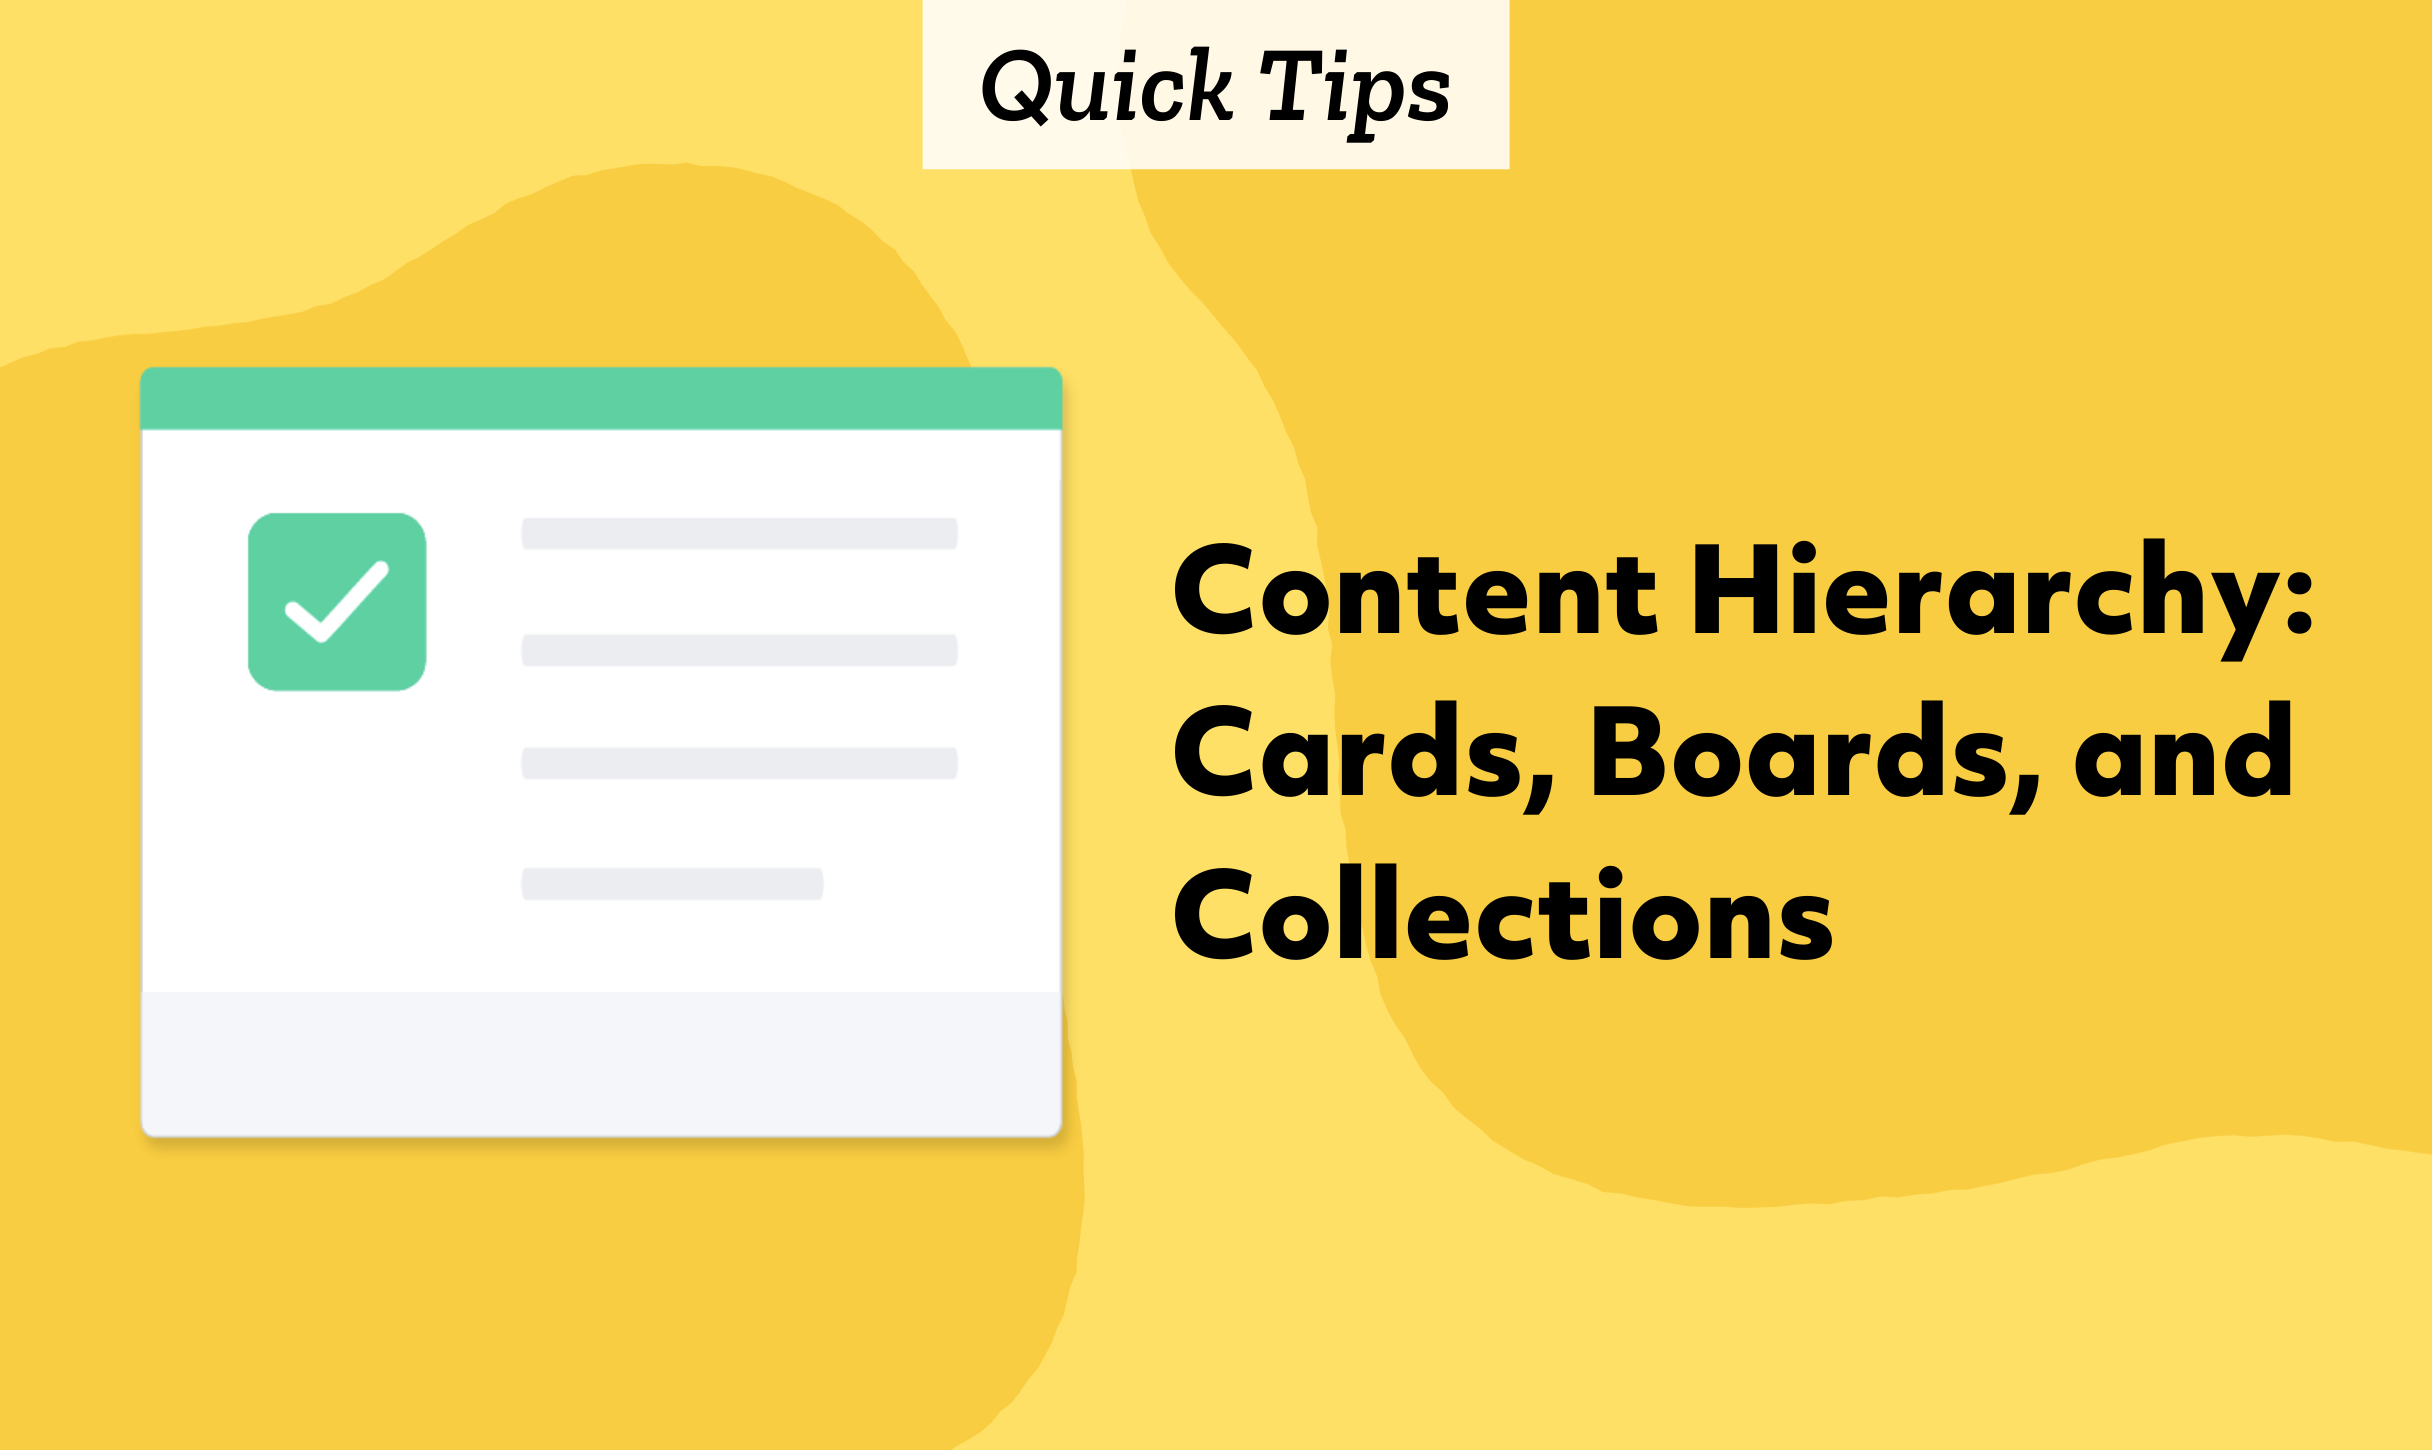 Quick Tips: Content Hierarchy - Cards, Boards, and Collections